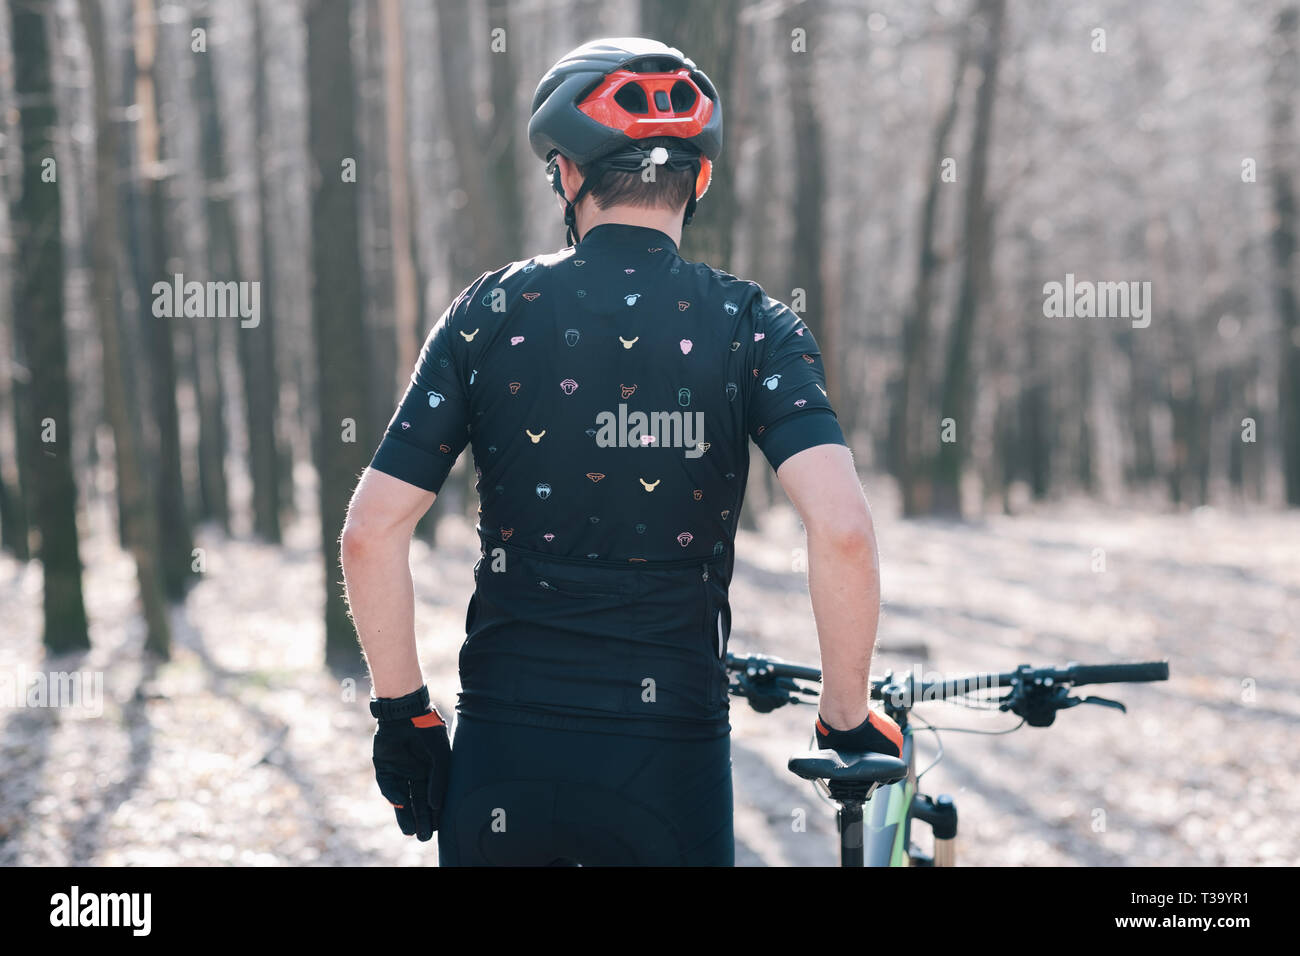 male athlete mountainbiker rides with bicycle in the forest - Stock Image